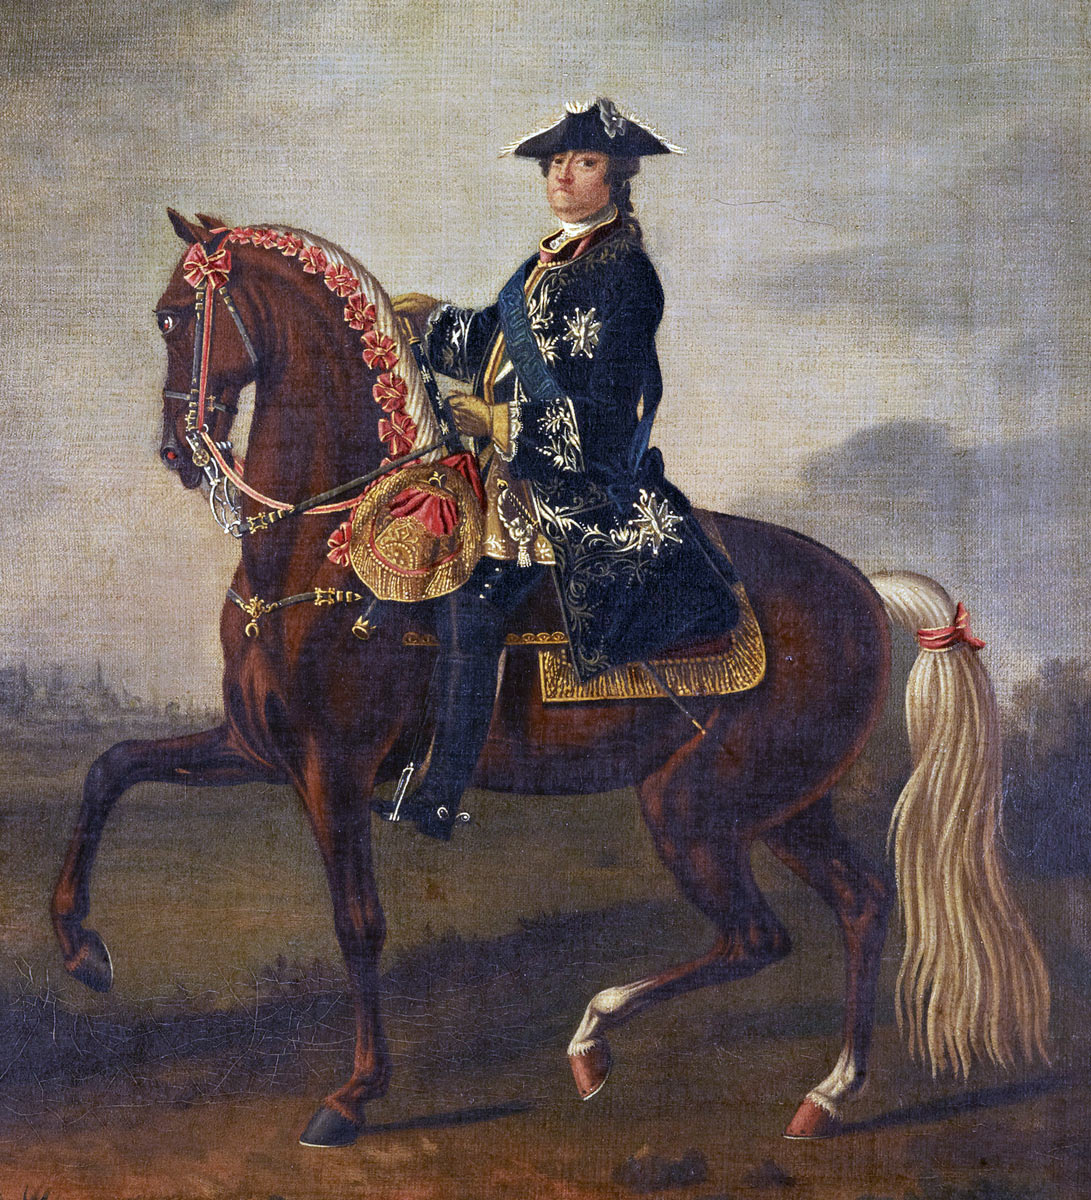 Marshal Maurice de Saxe commander of the French Army at the Battle of Lauffeldt 21st June 1747 in the War of the Austrian Succession: picture by David Morier